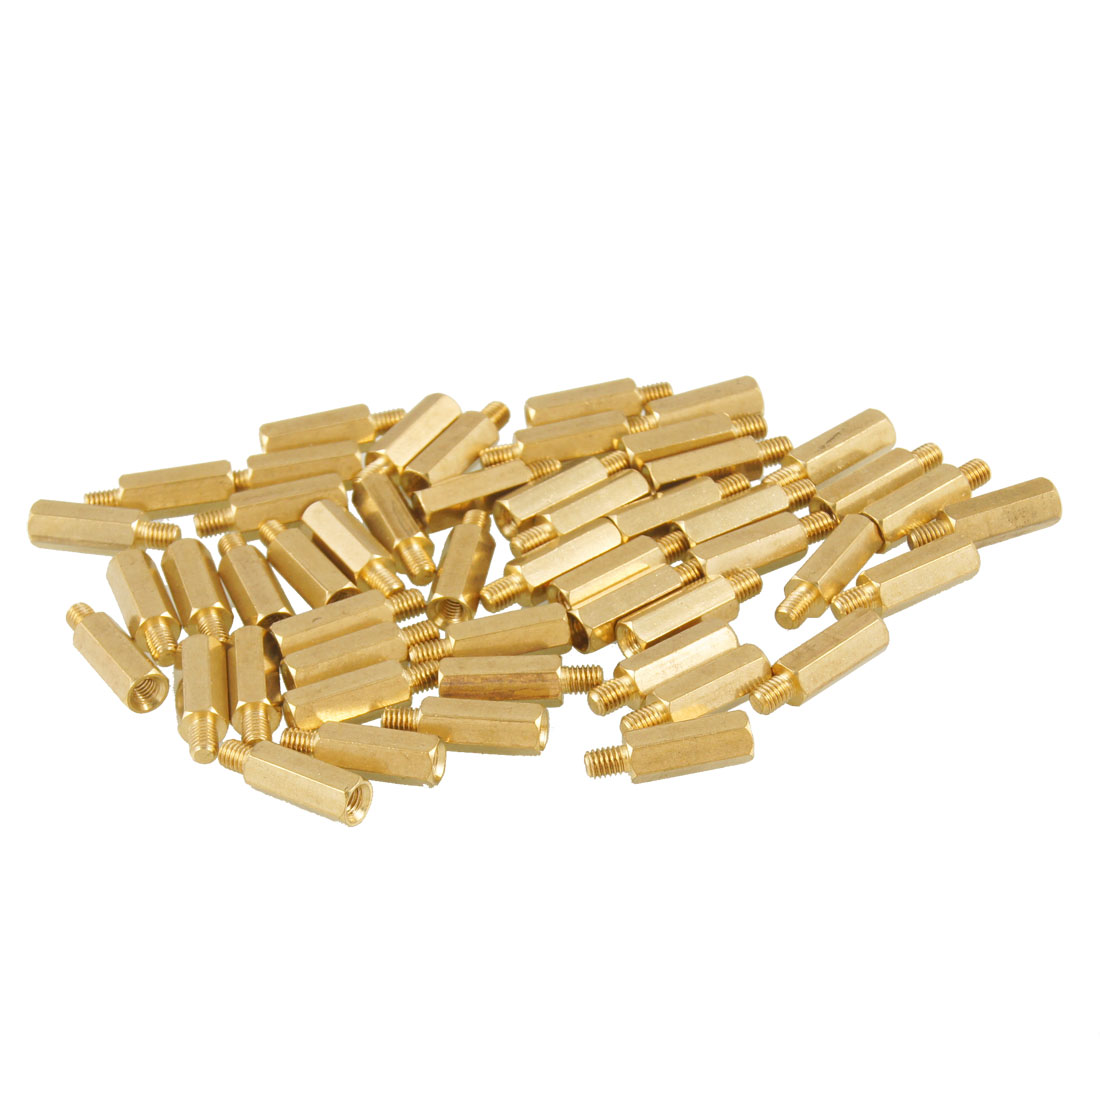 50 Pcs M3 Male x M3 Female 6mm Hexagonal Thread PCB Standoff Spacers